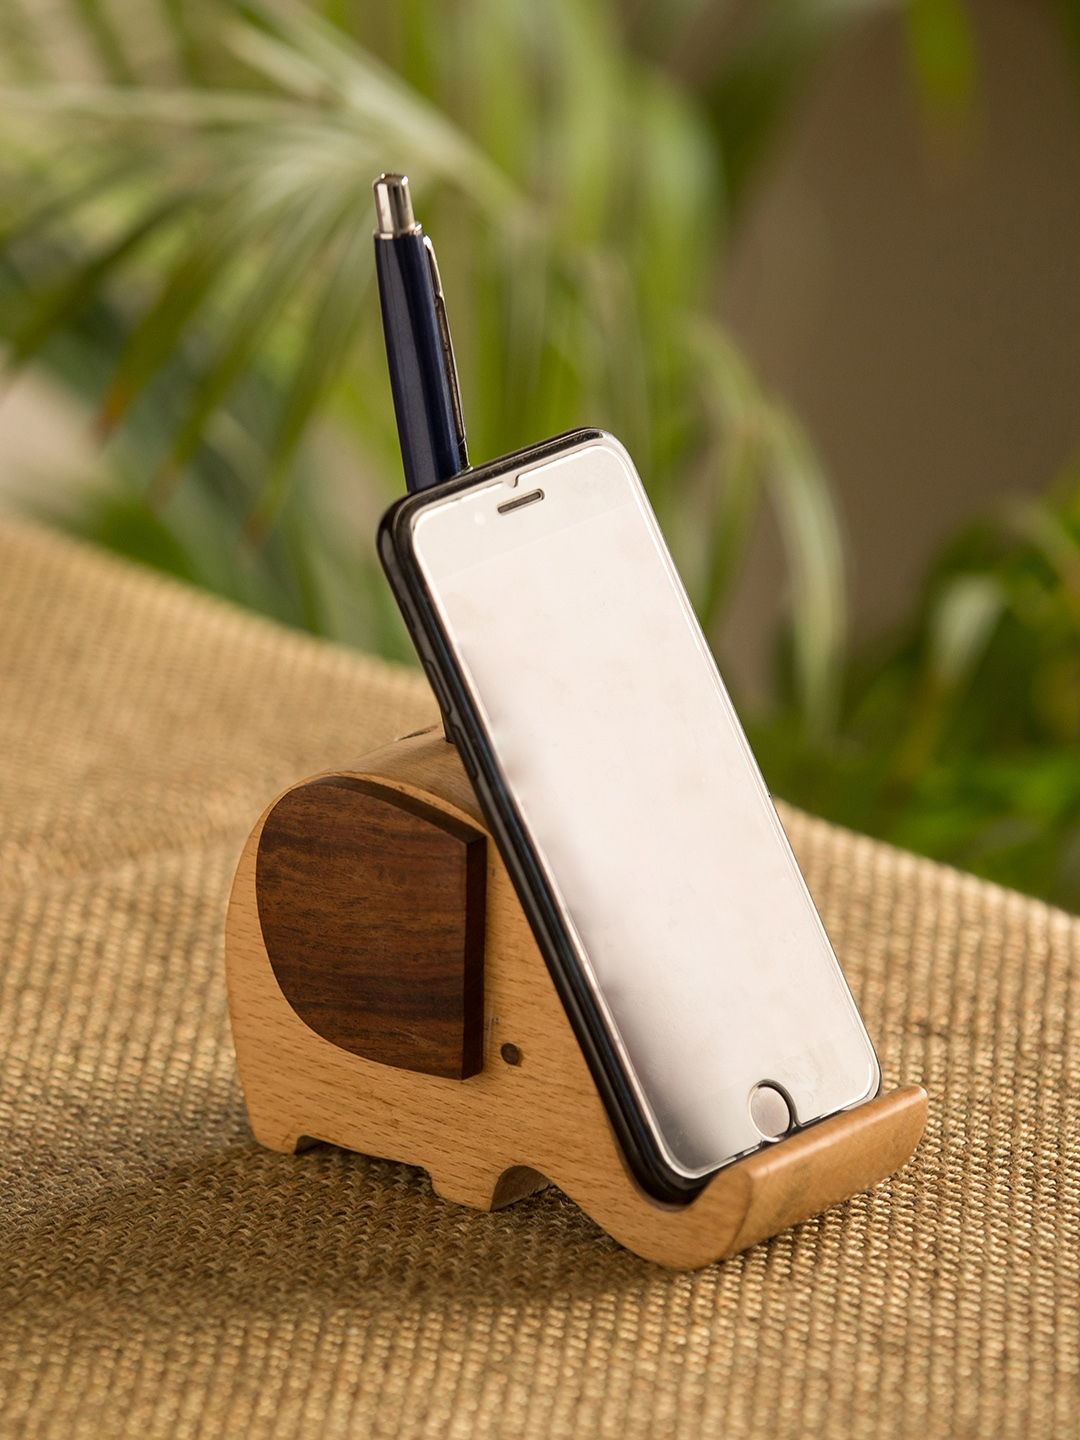 ExclusiveLane Brown Elephant Shaped Wood Handcrafted Mobile Stand with Pen Holders